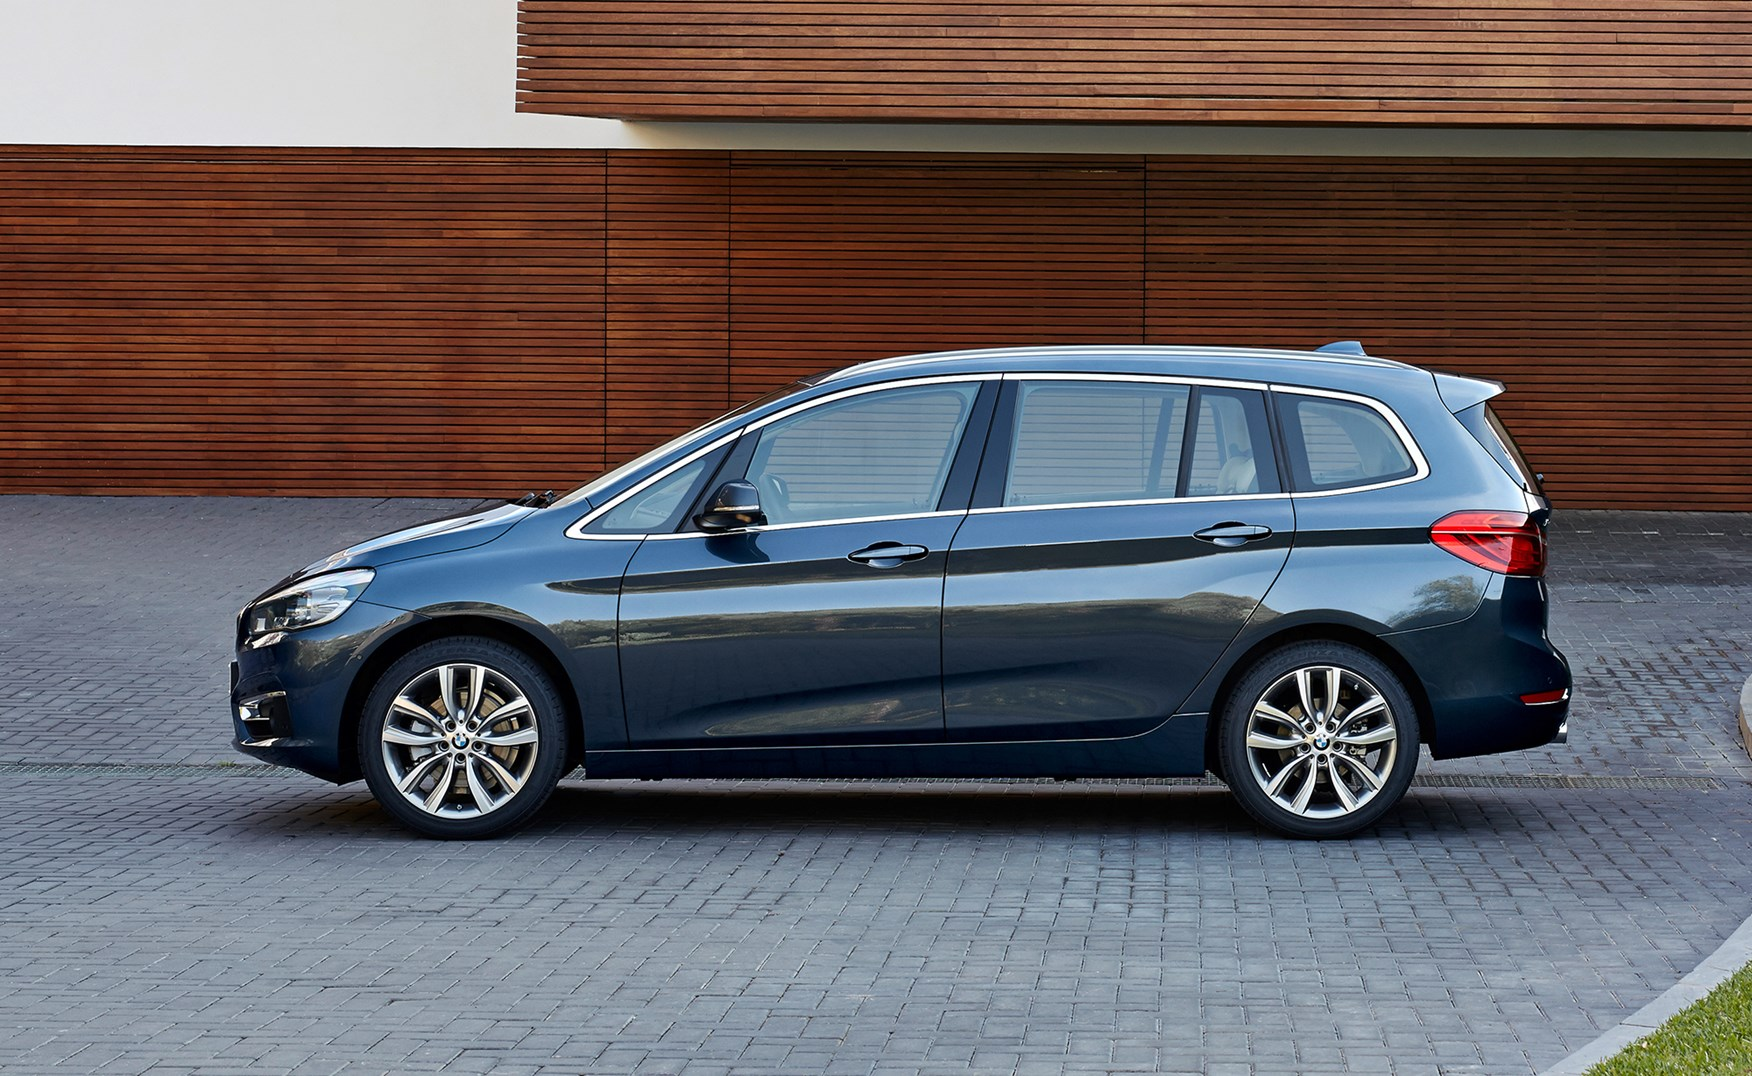 bmw 2-series gran tourer (2015): it's munich's first seven-seat